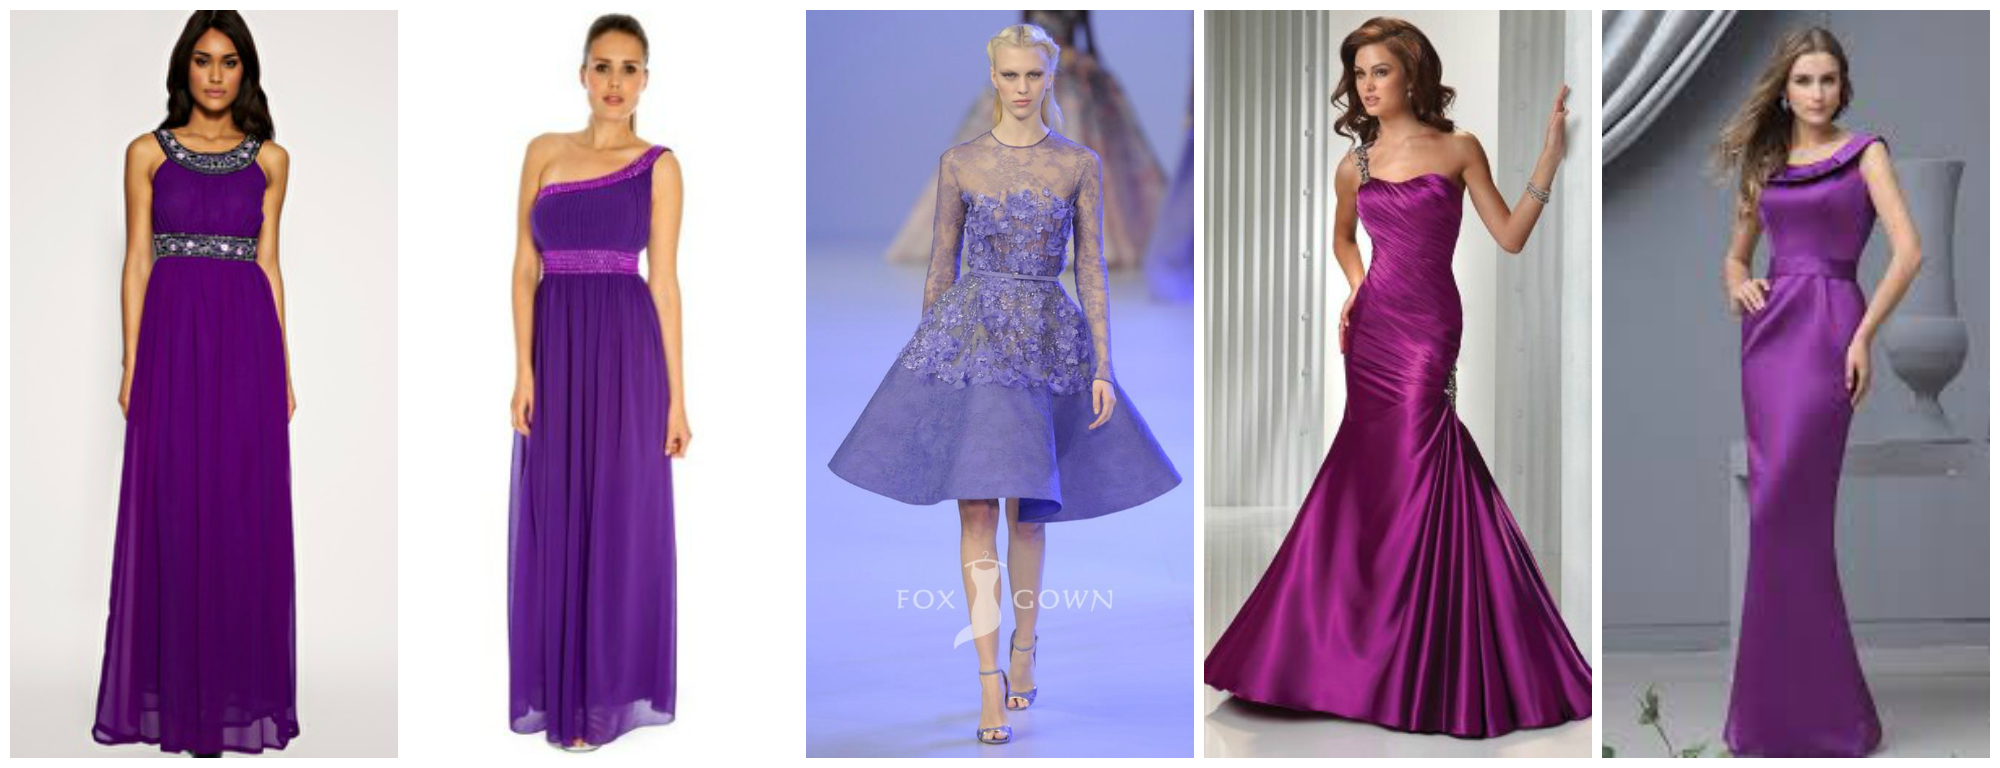 Inspiration: How to make PURPLE work in your wedding! | Knots and ...